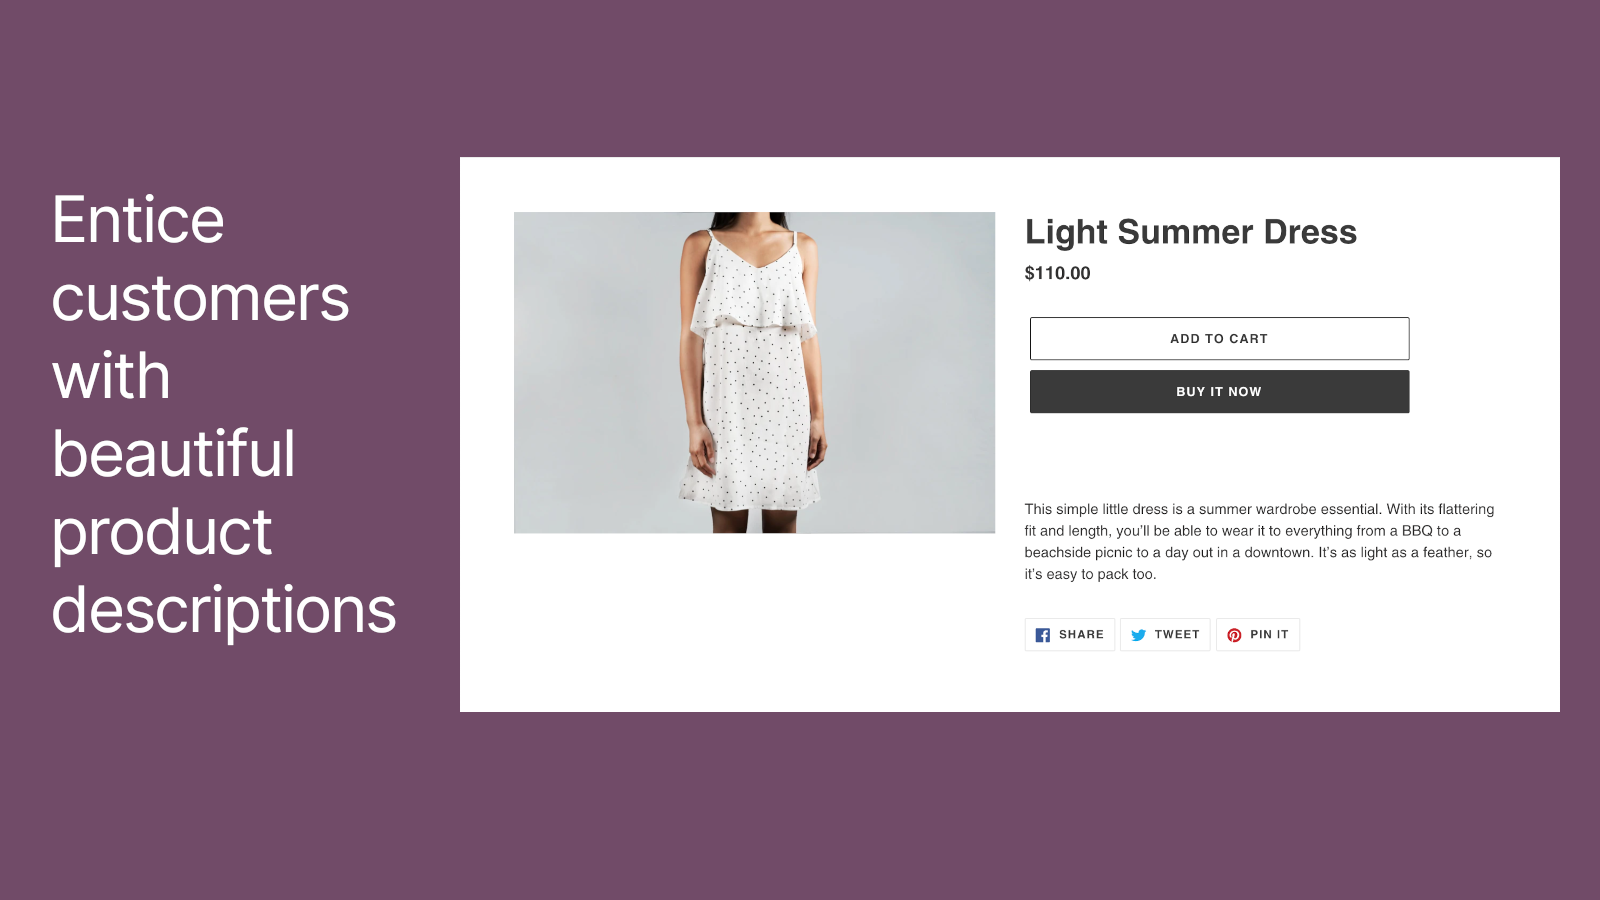 Entice customers with beautiful product descriptions